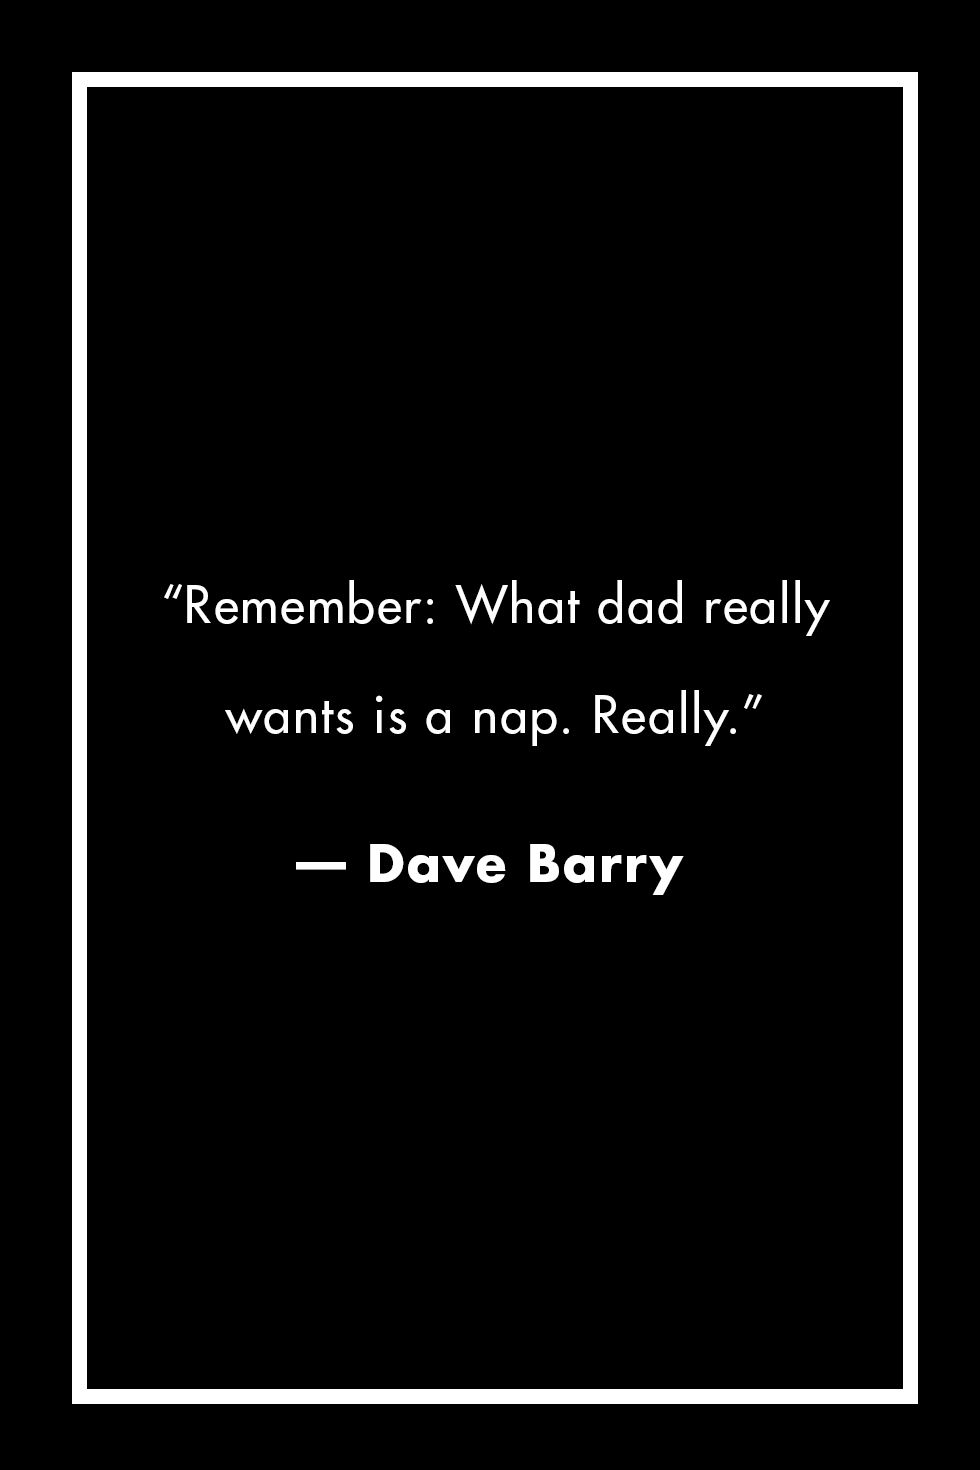 Fathers Day Quotes 20 Best Father's Day Quotes  Dad Quotes For Father's Day